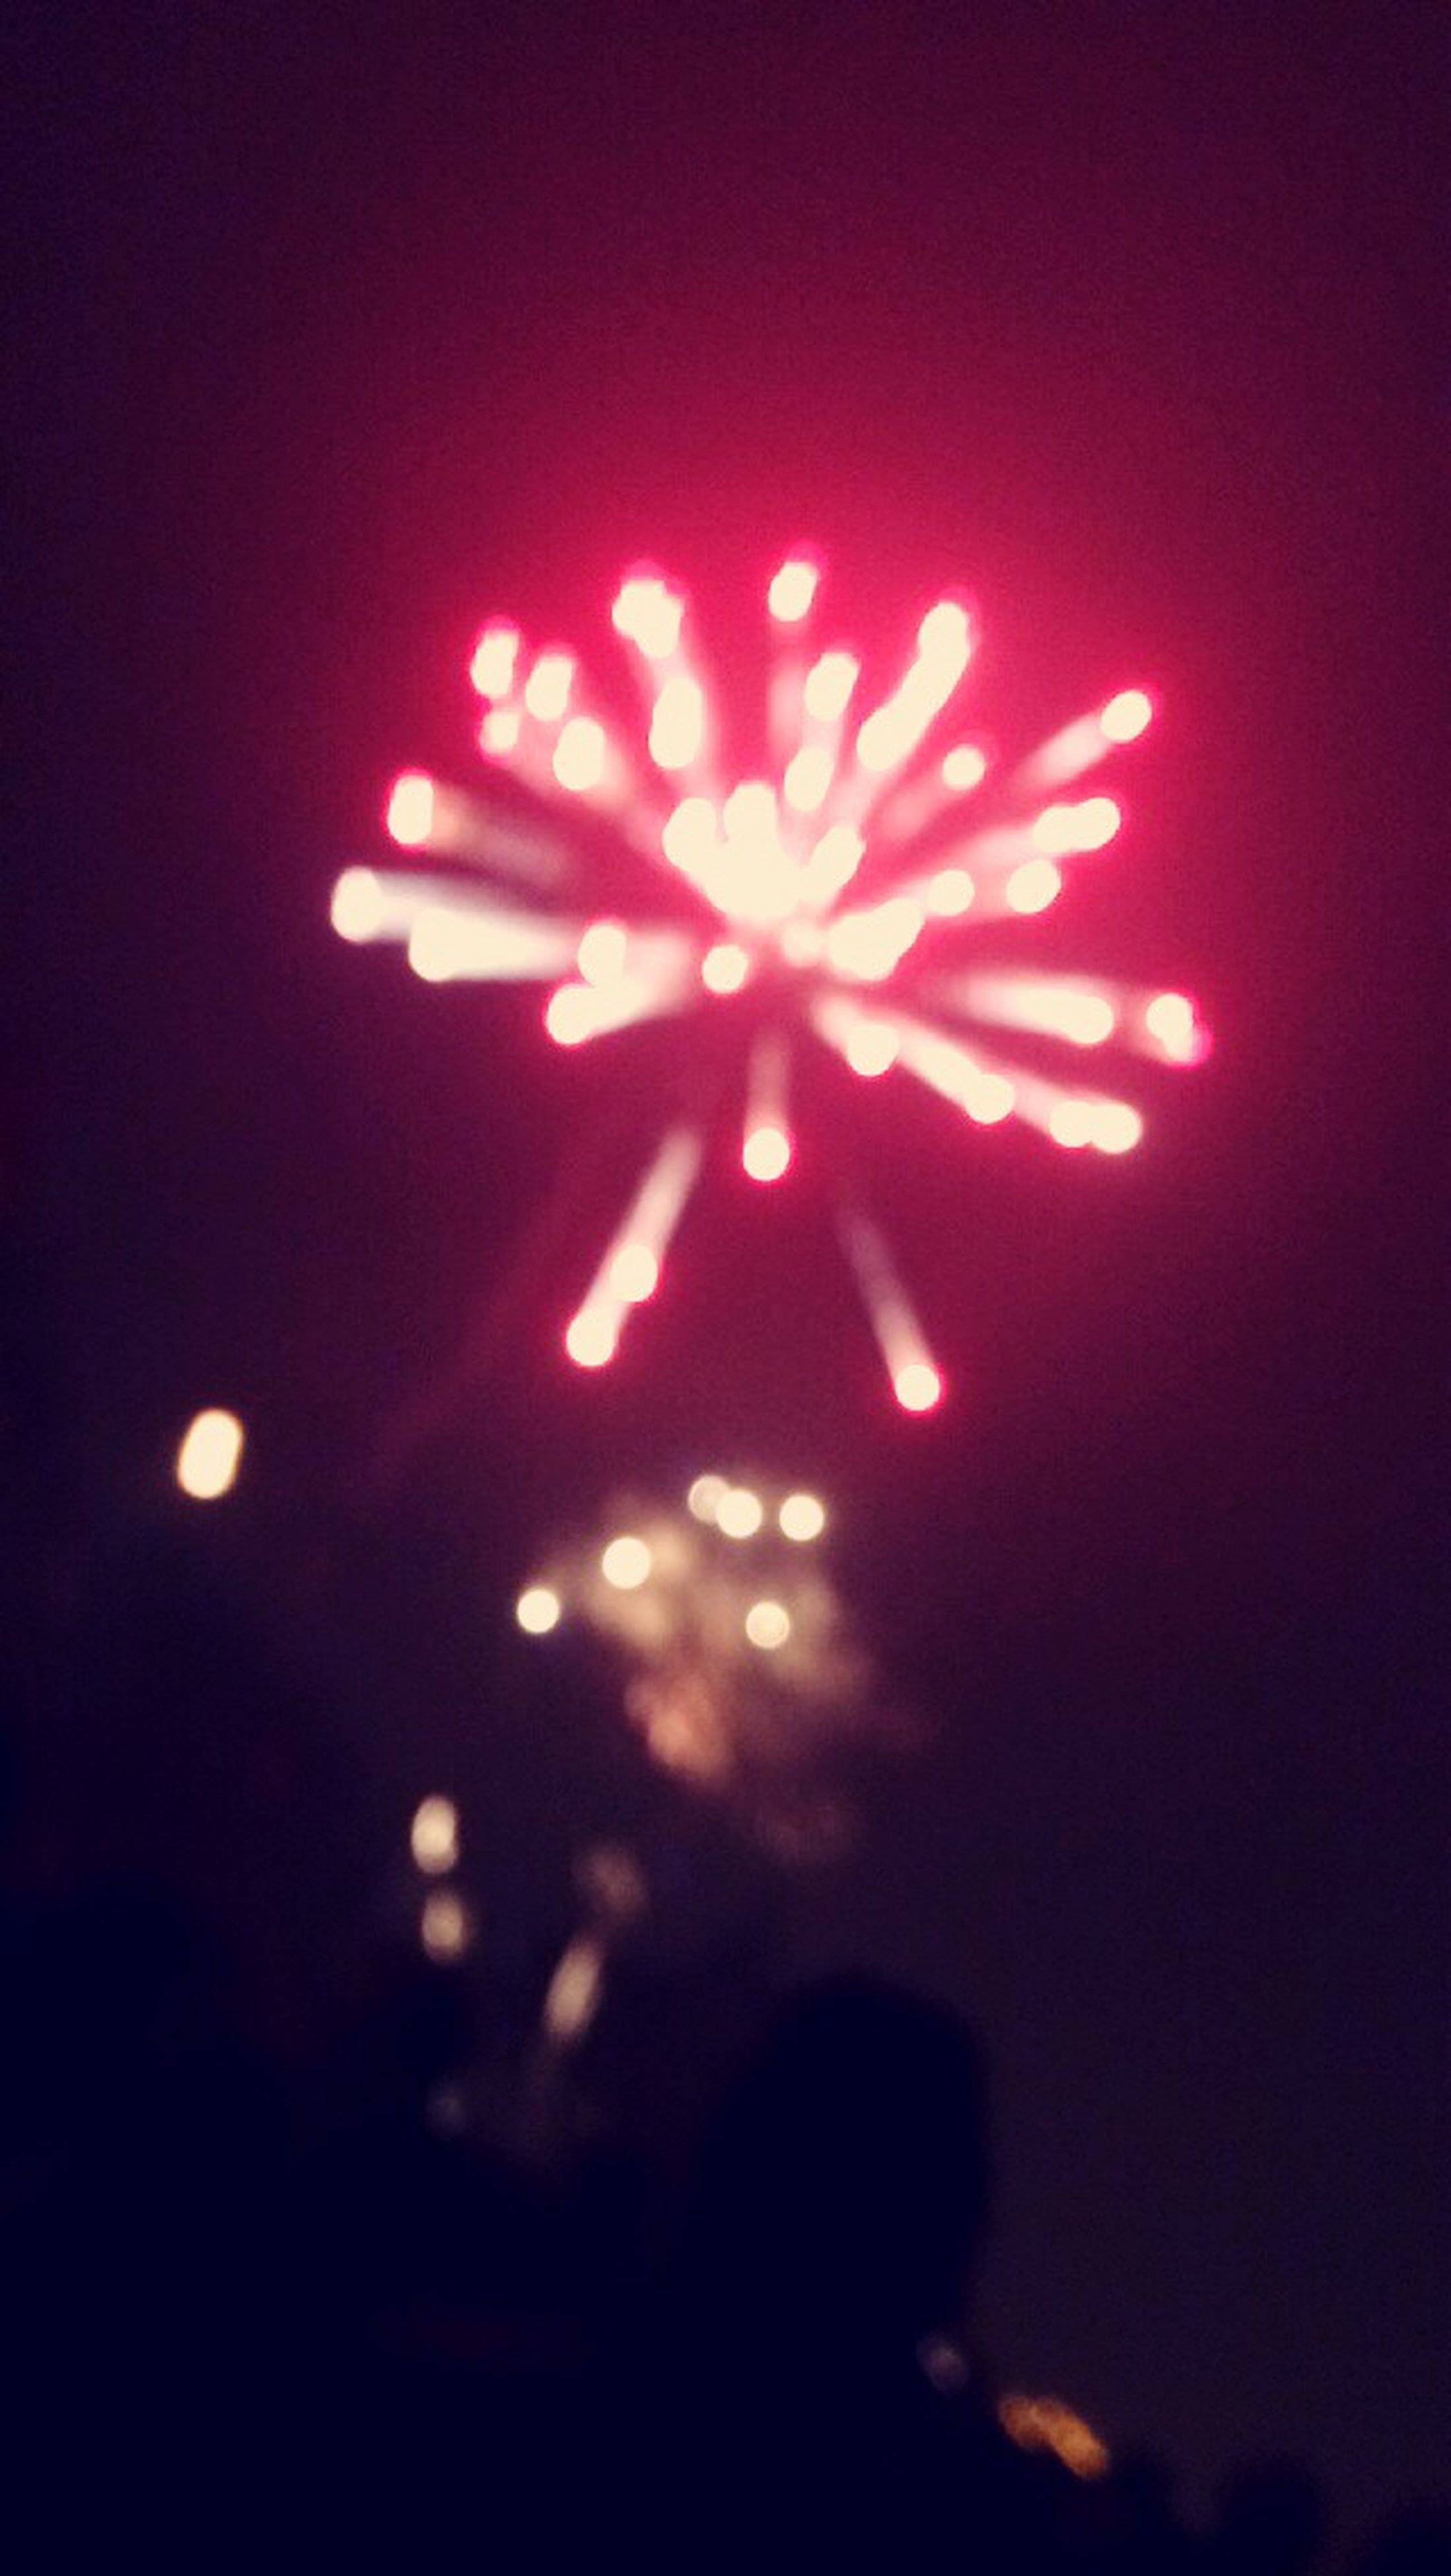 illuminated, night, red, celebration, glowing, event, light - natural phenomenon, indoors, low angle view, light, arts culture and entertainment, orange color, dark, lighting equipment, celebration event, firework display, sky, exploding